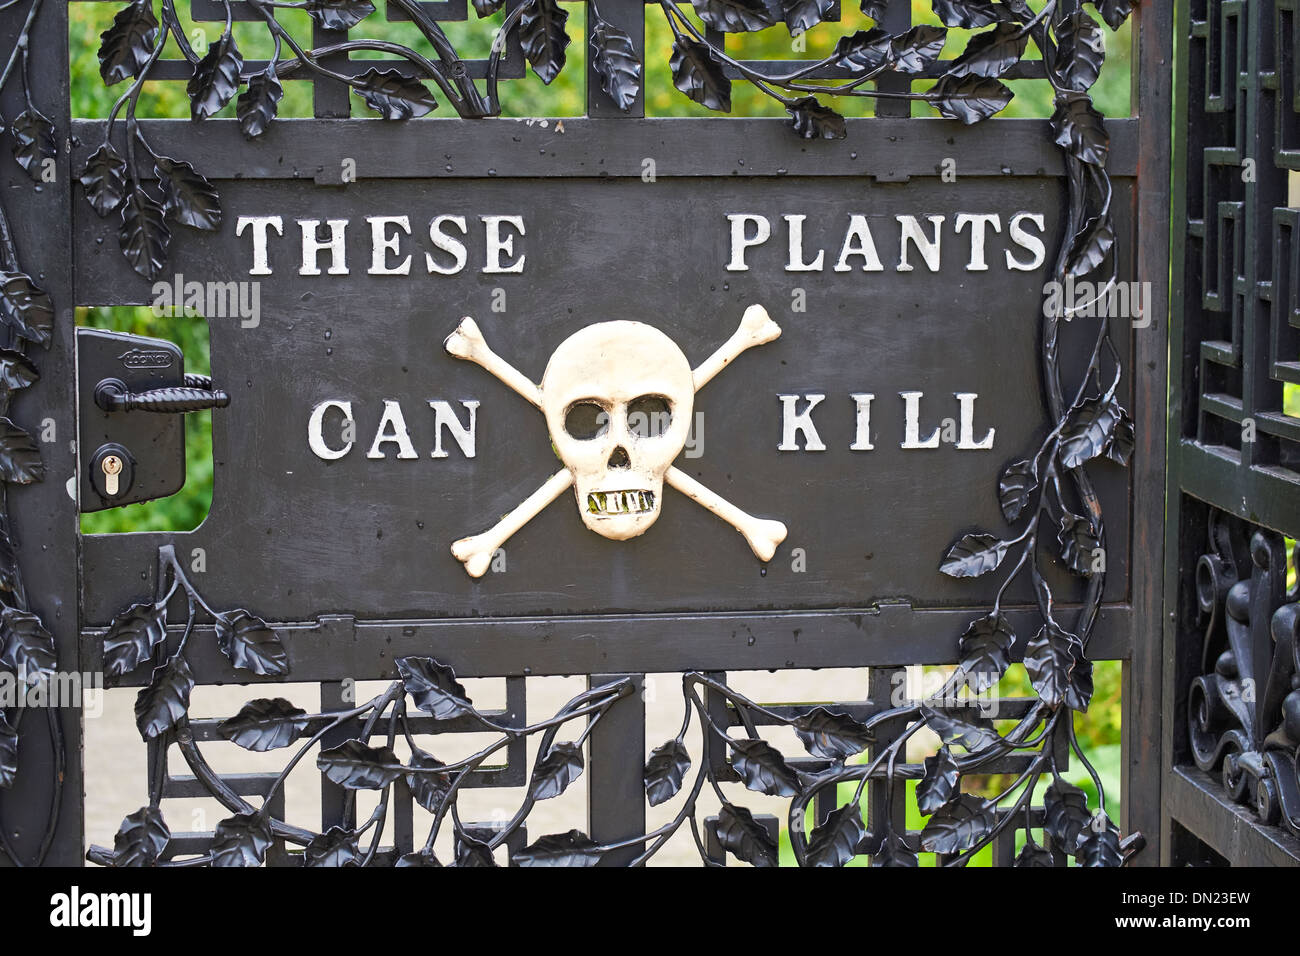 Poison garden at Alnwick Garden, Northumberland, England, UK. - Stock Image